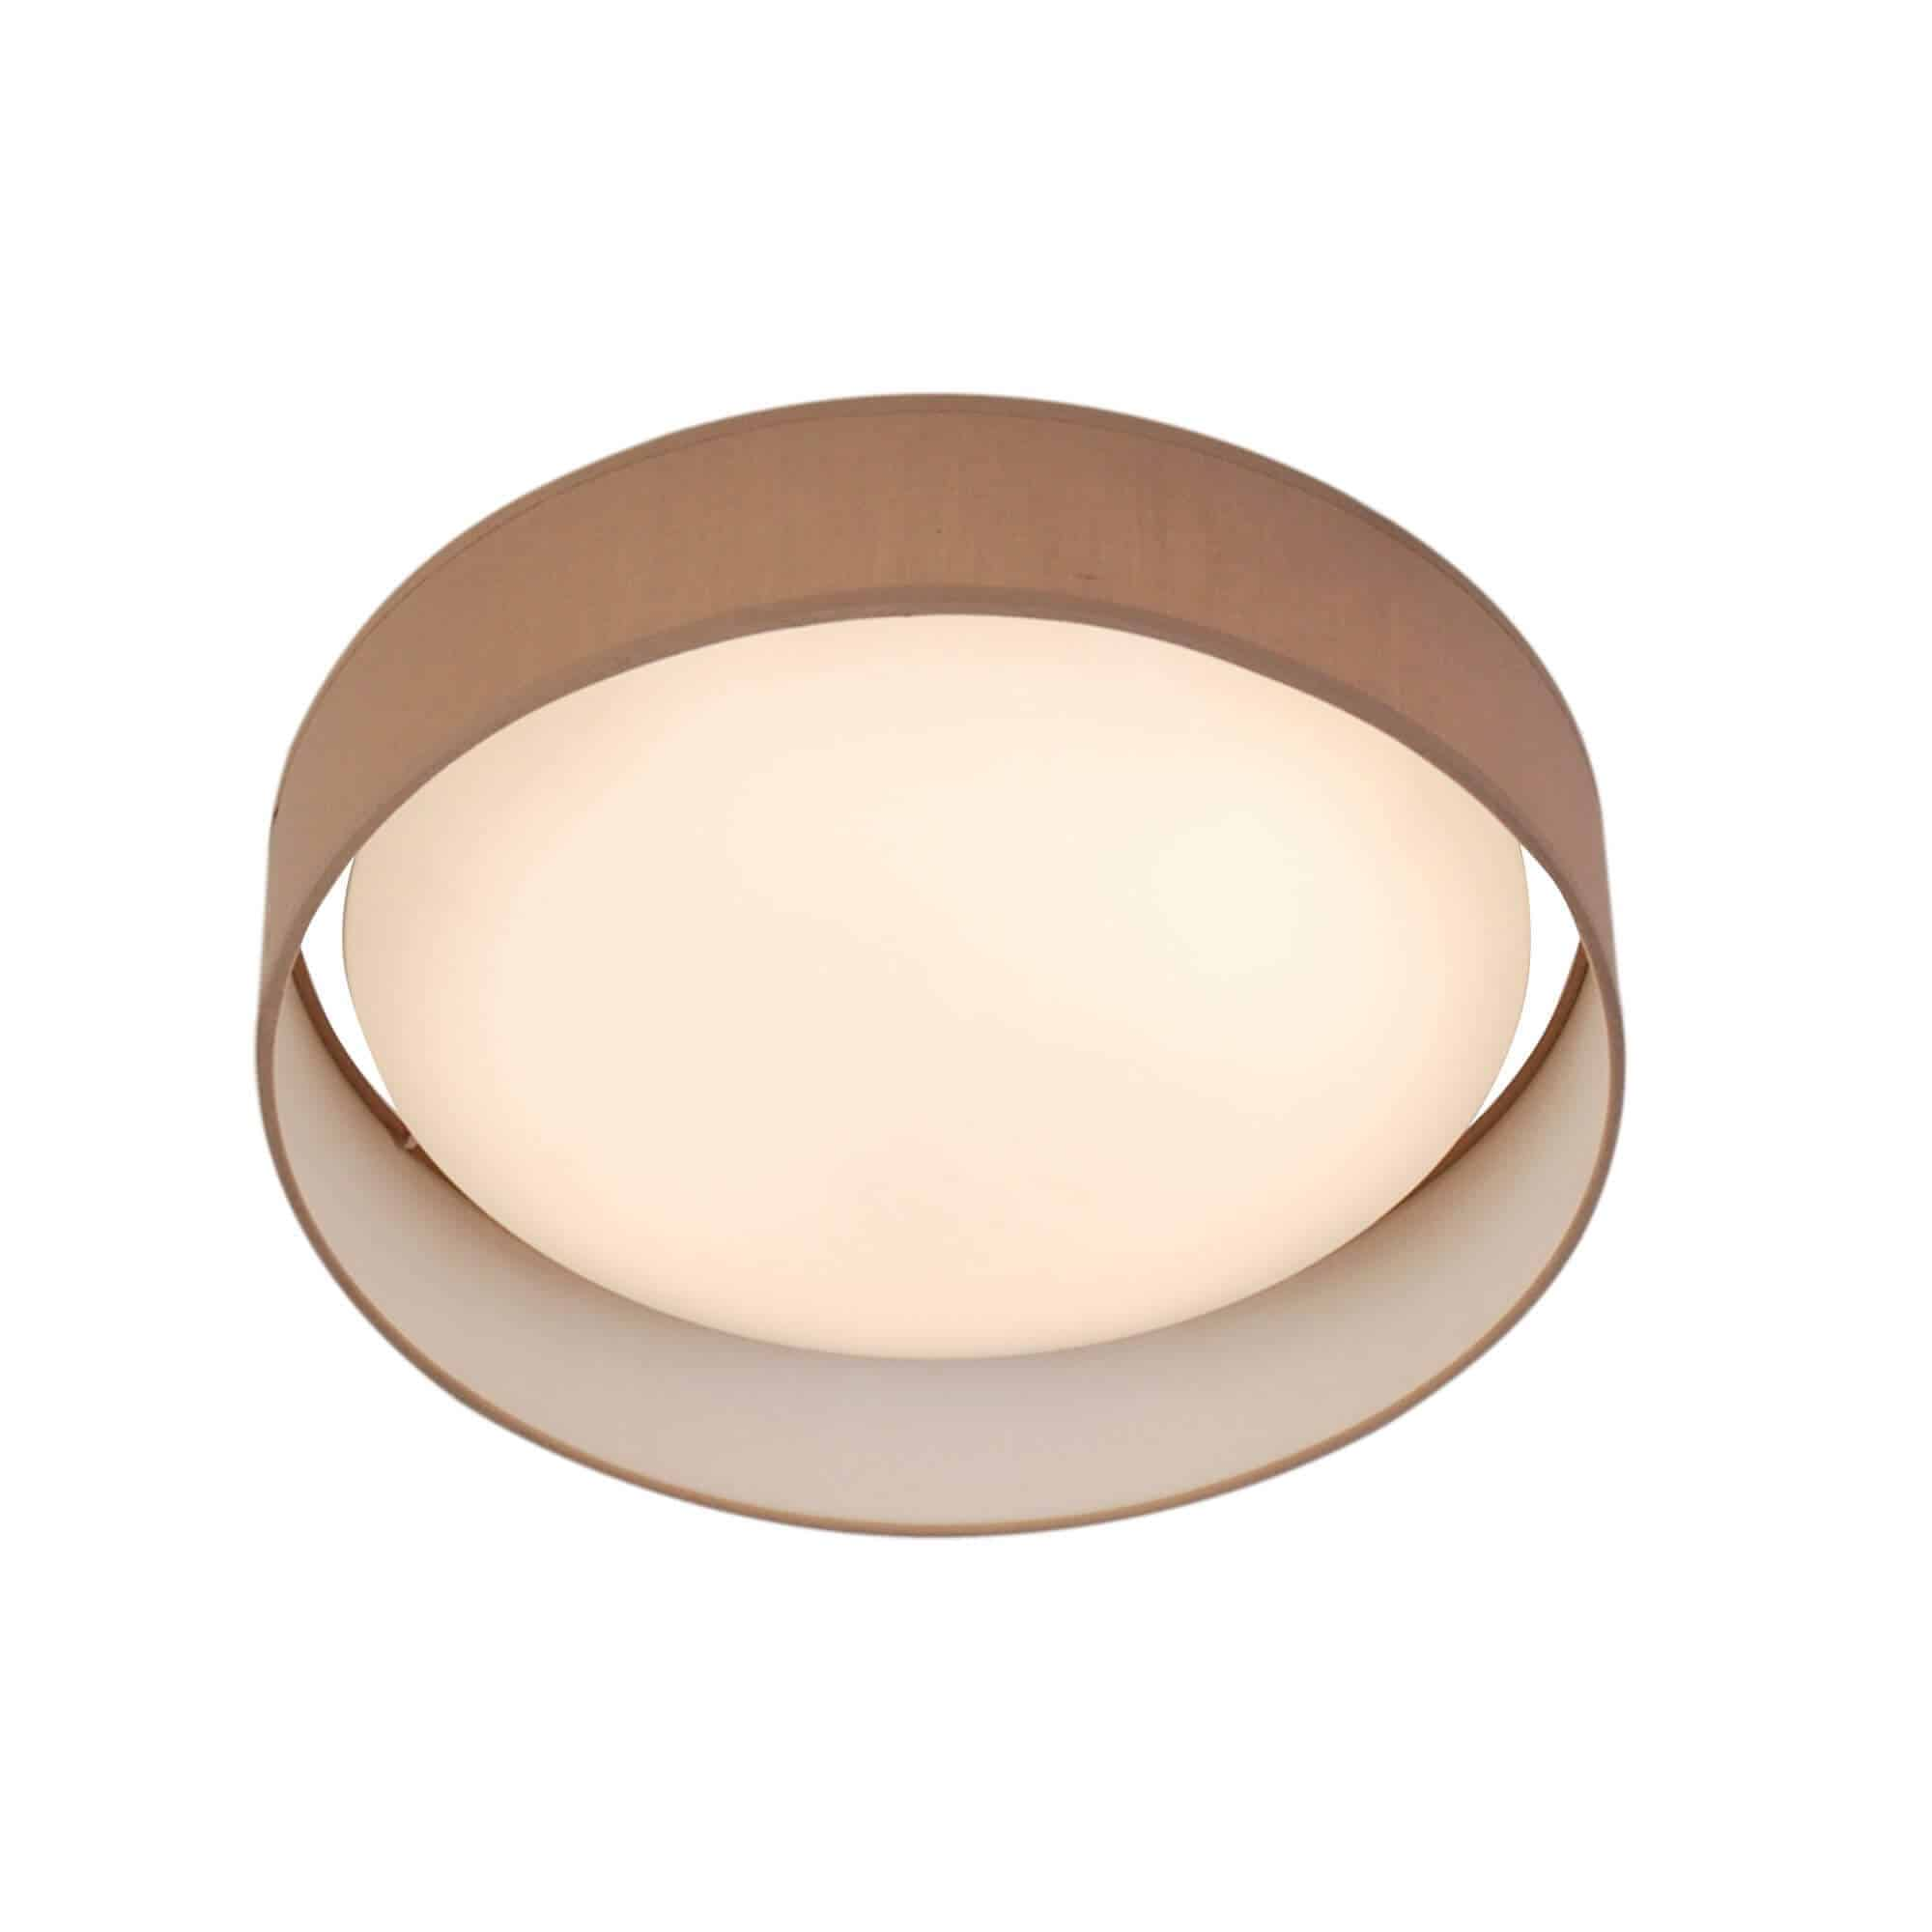 9371-50BR – Searchlight Gianna Brown 1 Light LED Flush Ceiling Light